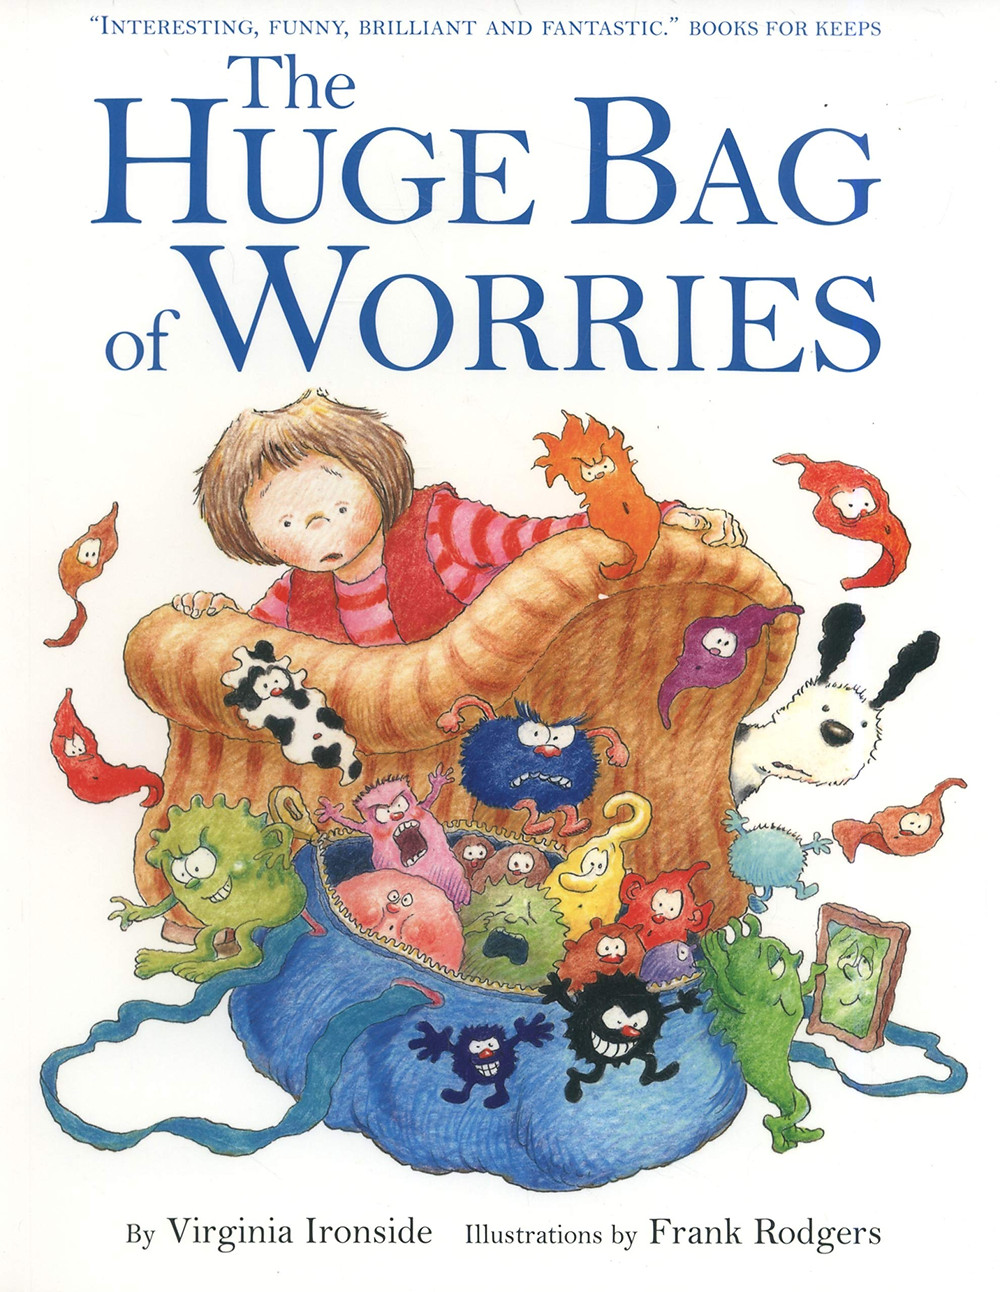 Positive mental health books for children - the huge bag of worries